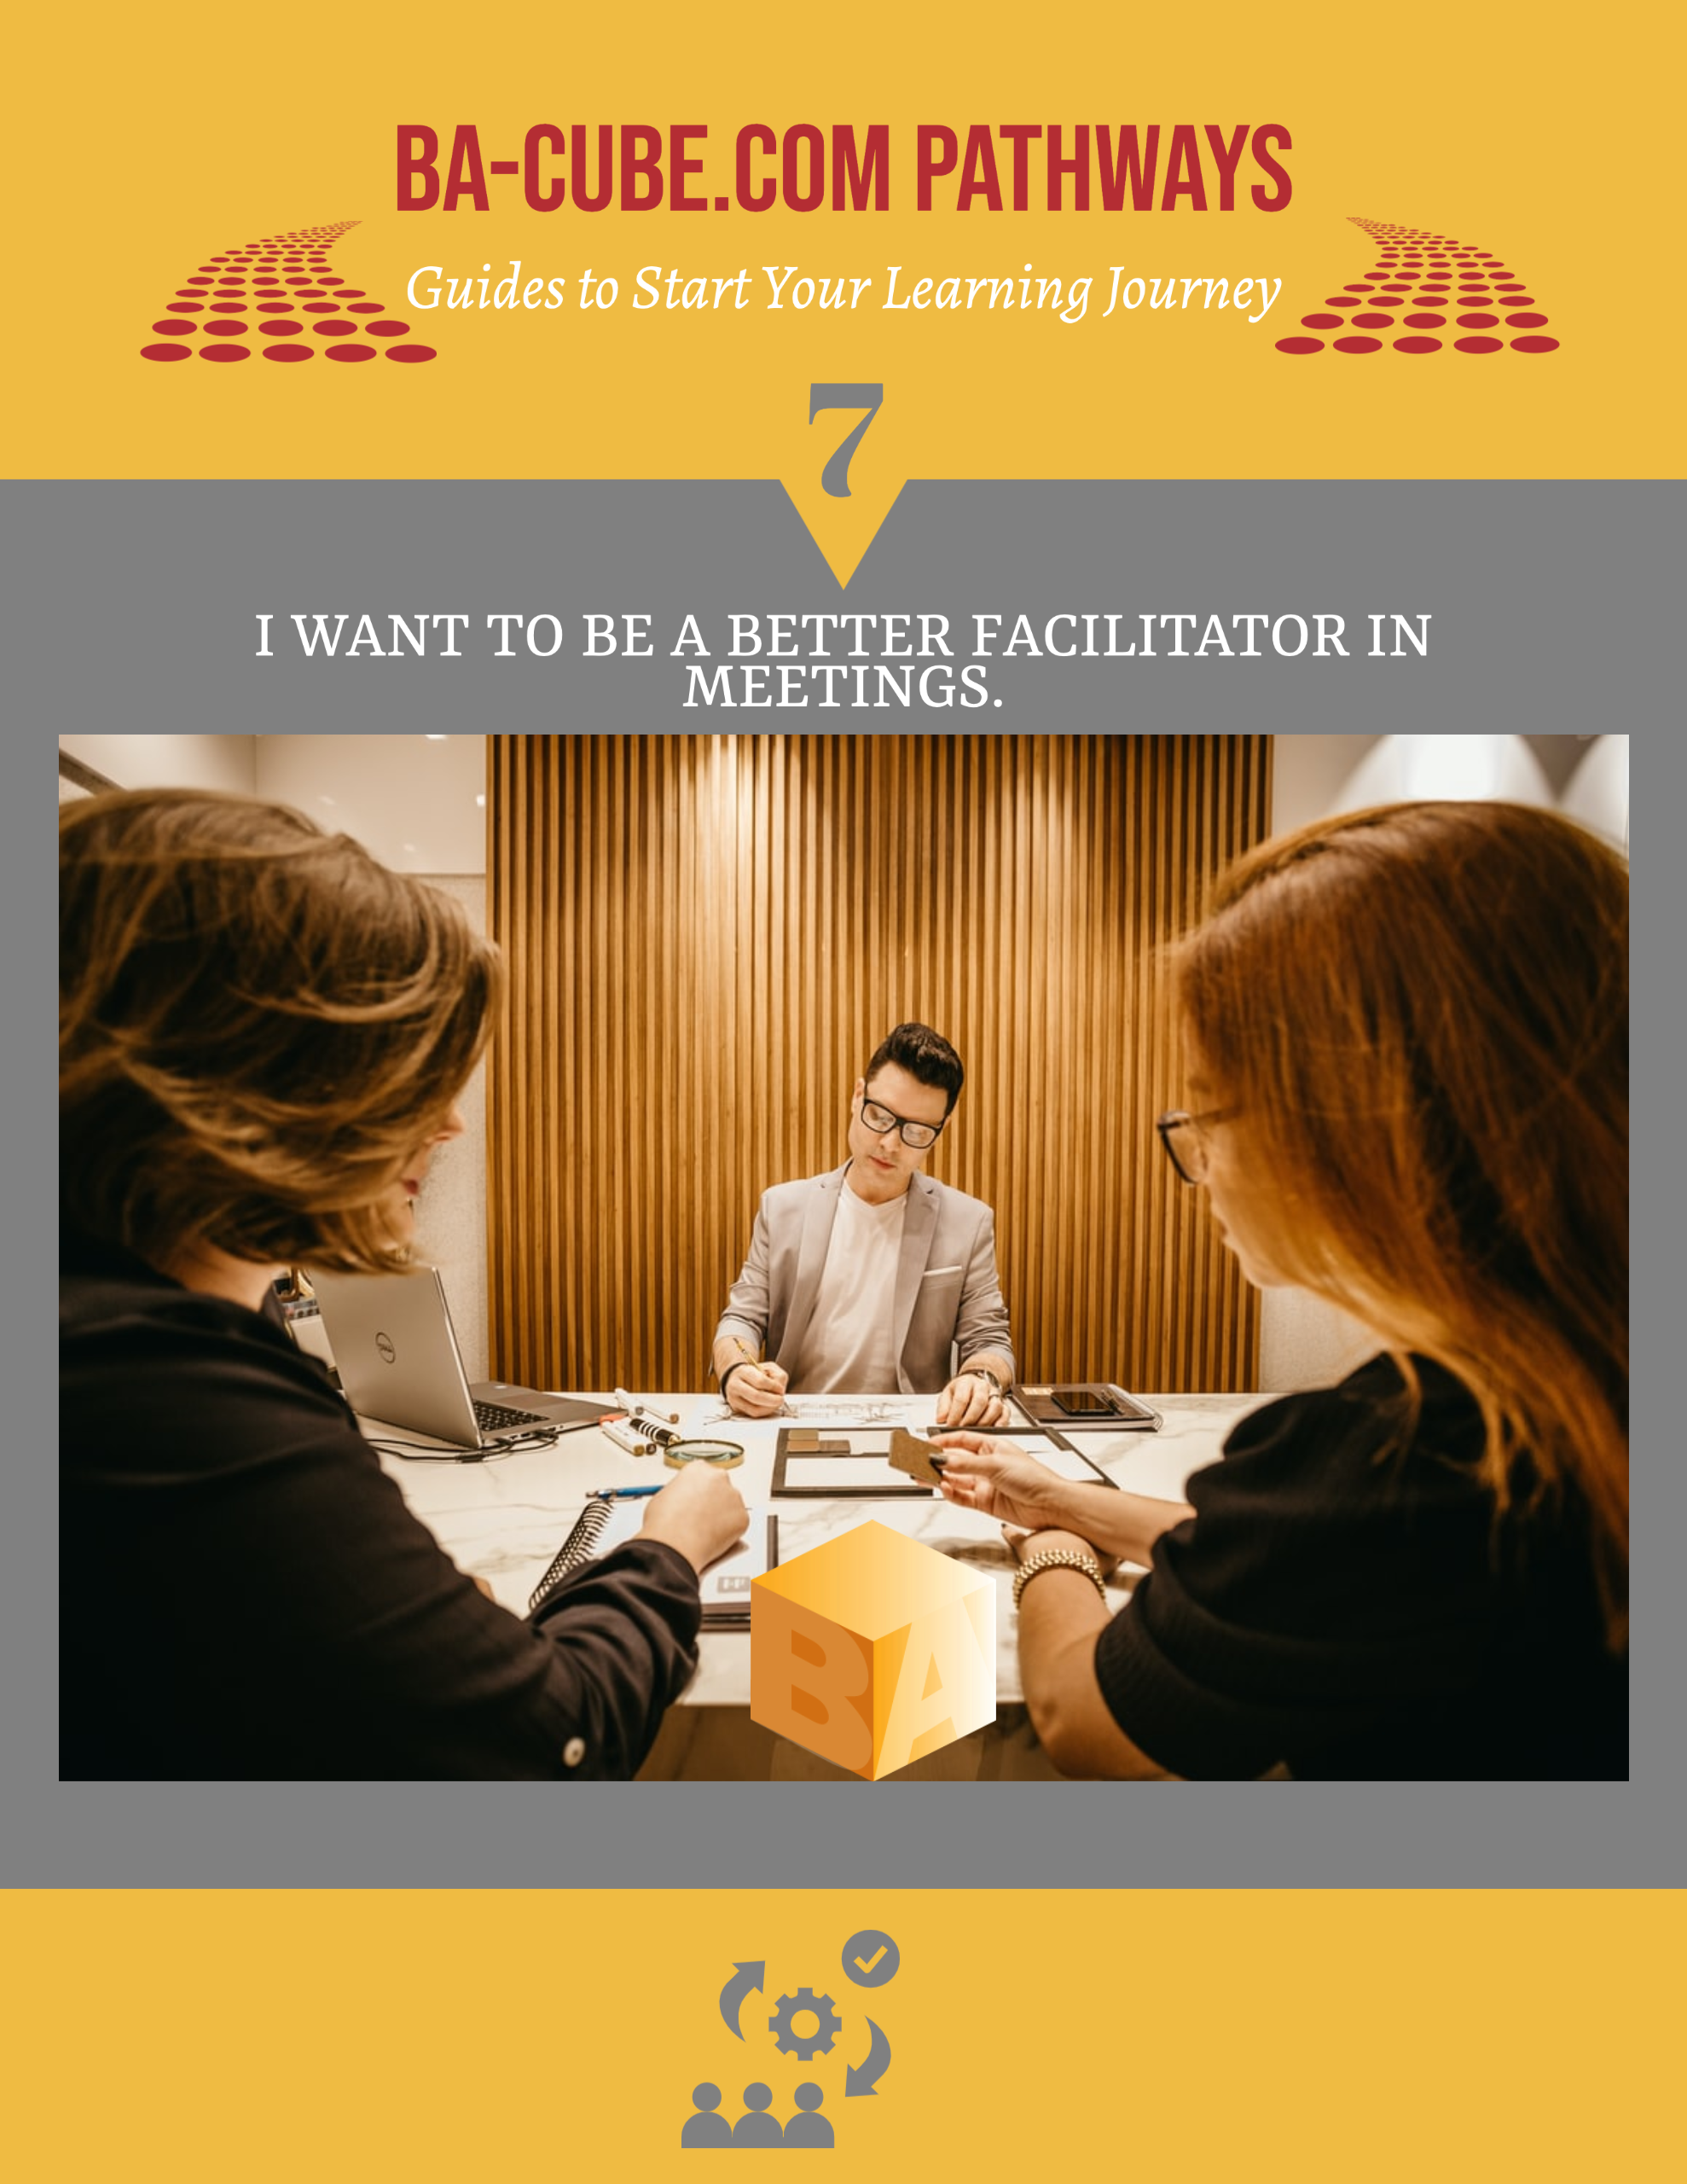 Pathway 7: I Want to Facilitate Better Meetings